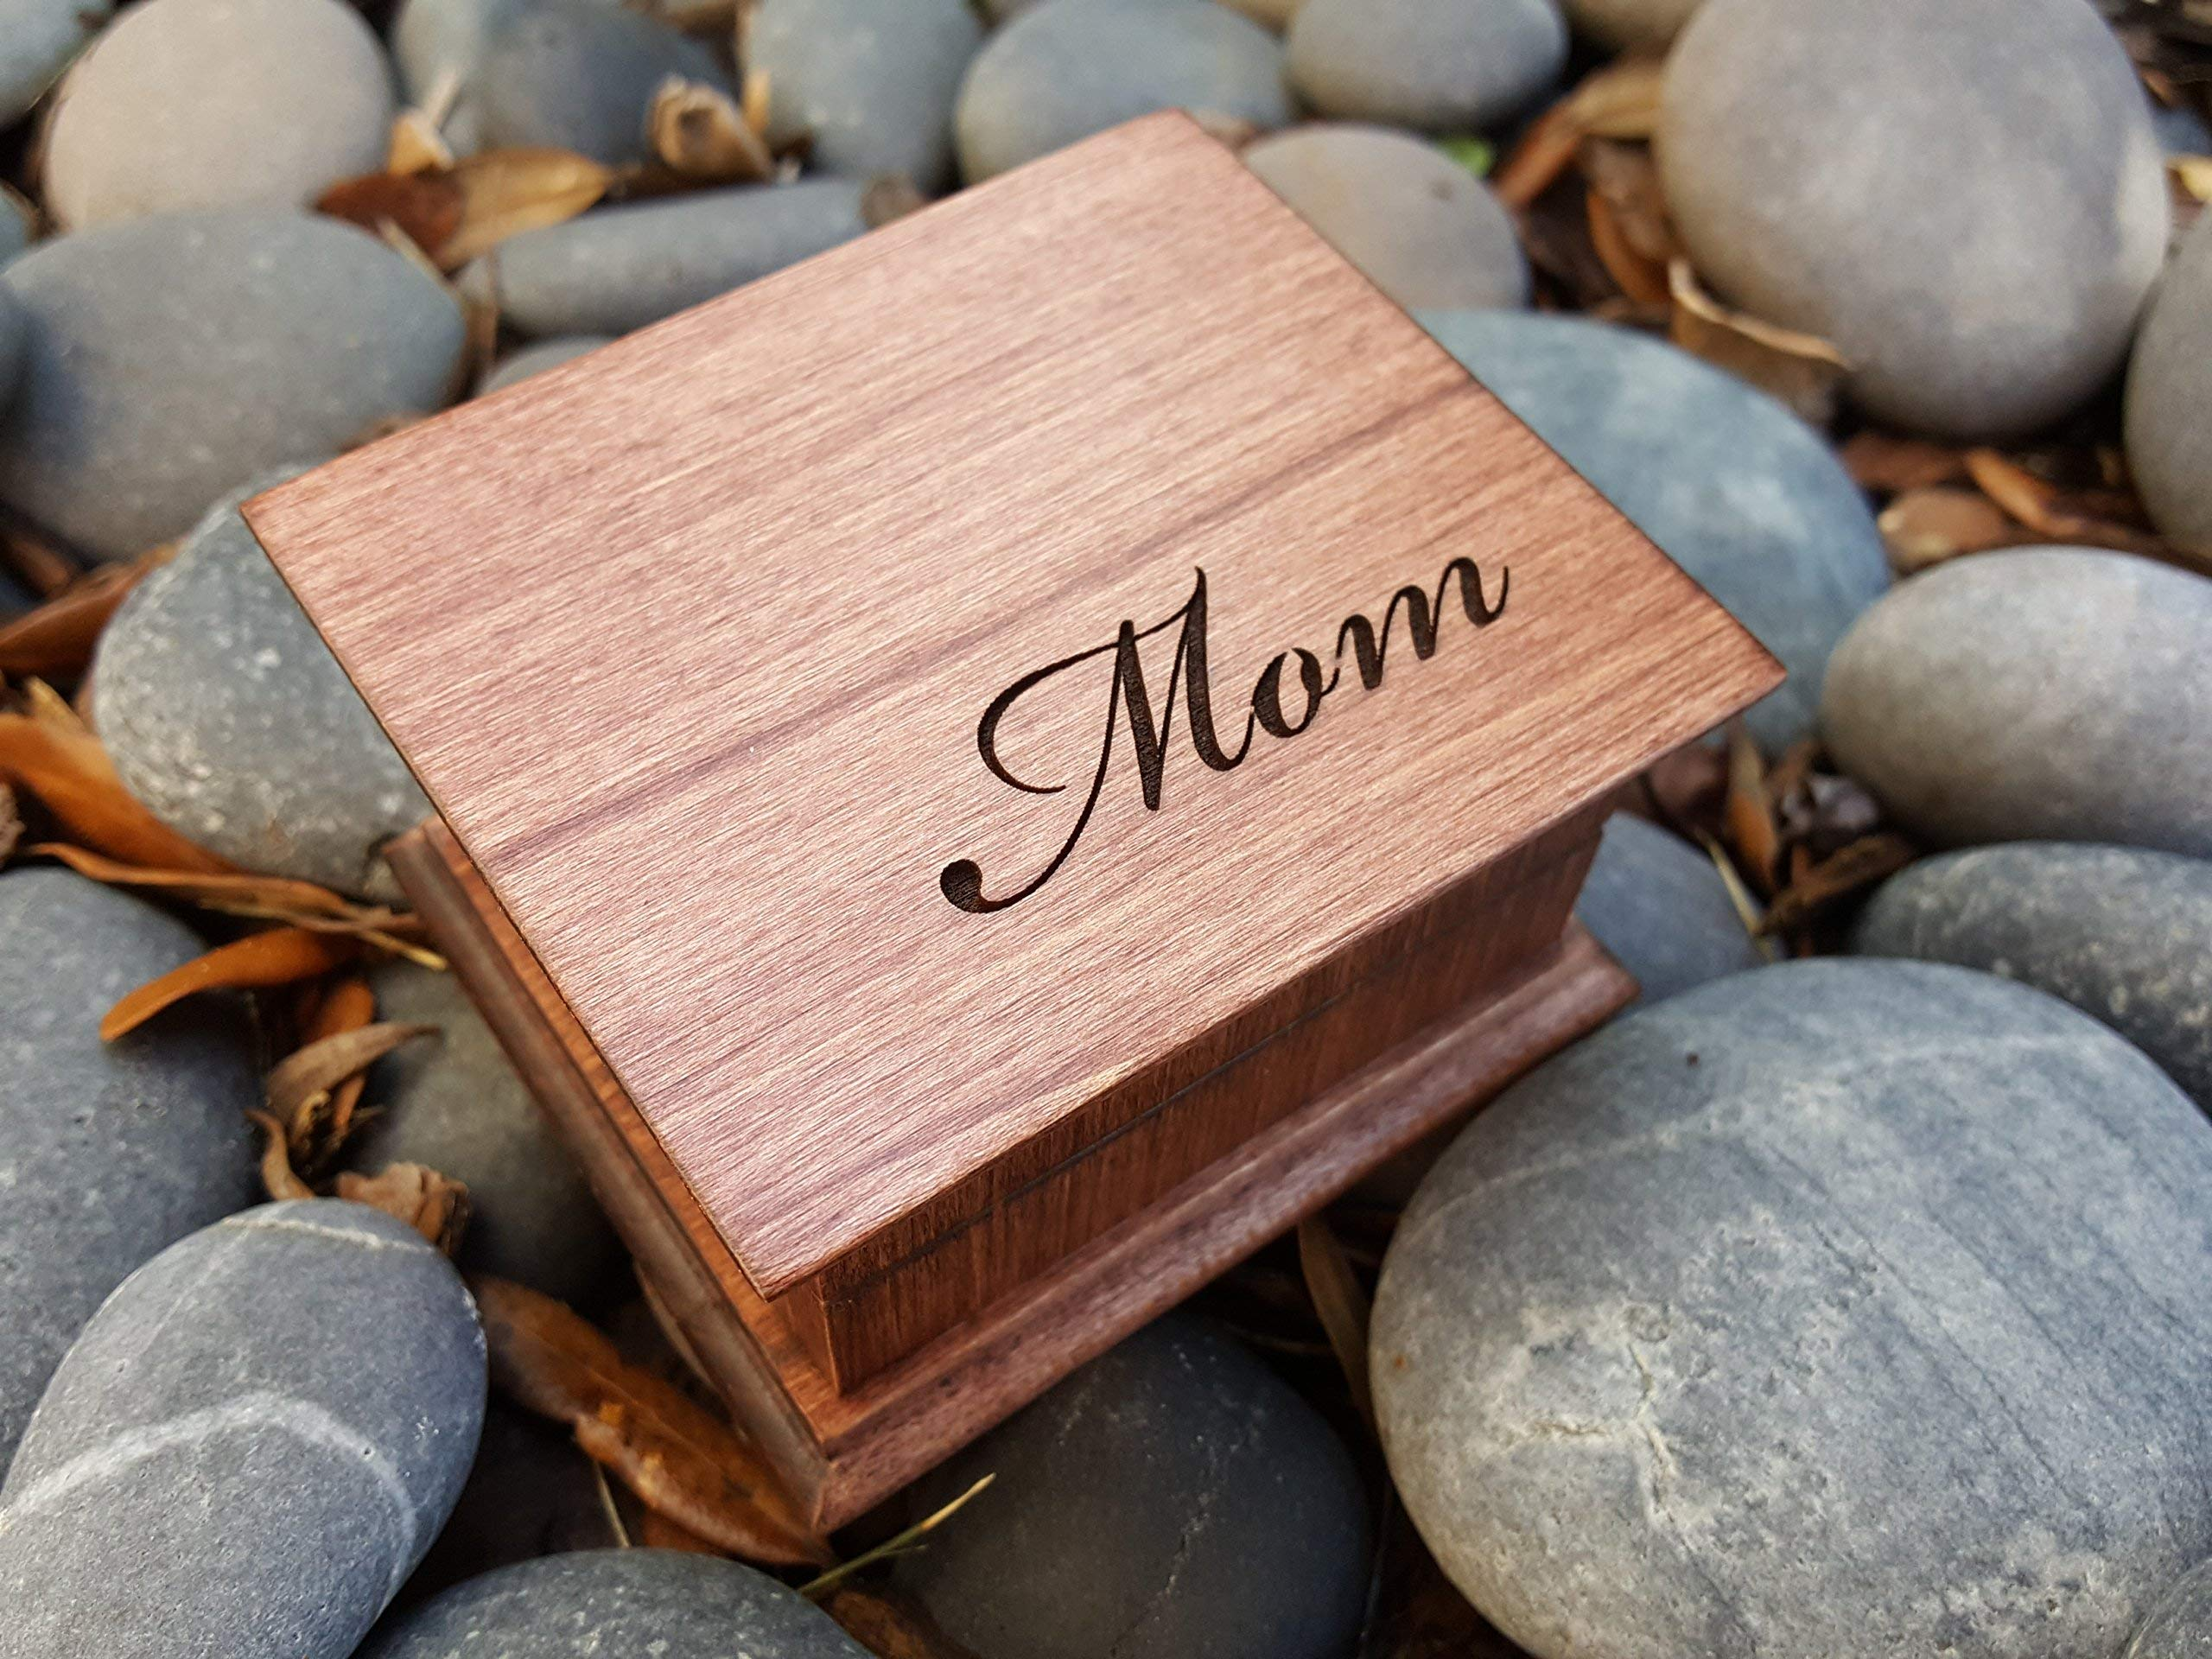 Custom made music box with Mom engraved on top, with your choice of color and song, great gift for Mother's day or birthday gift for mom